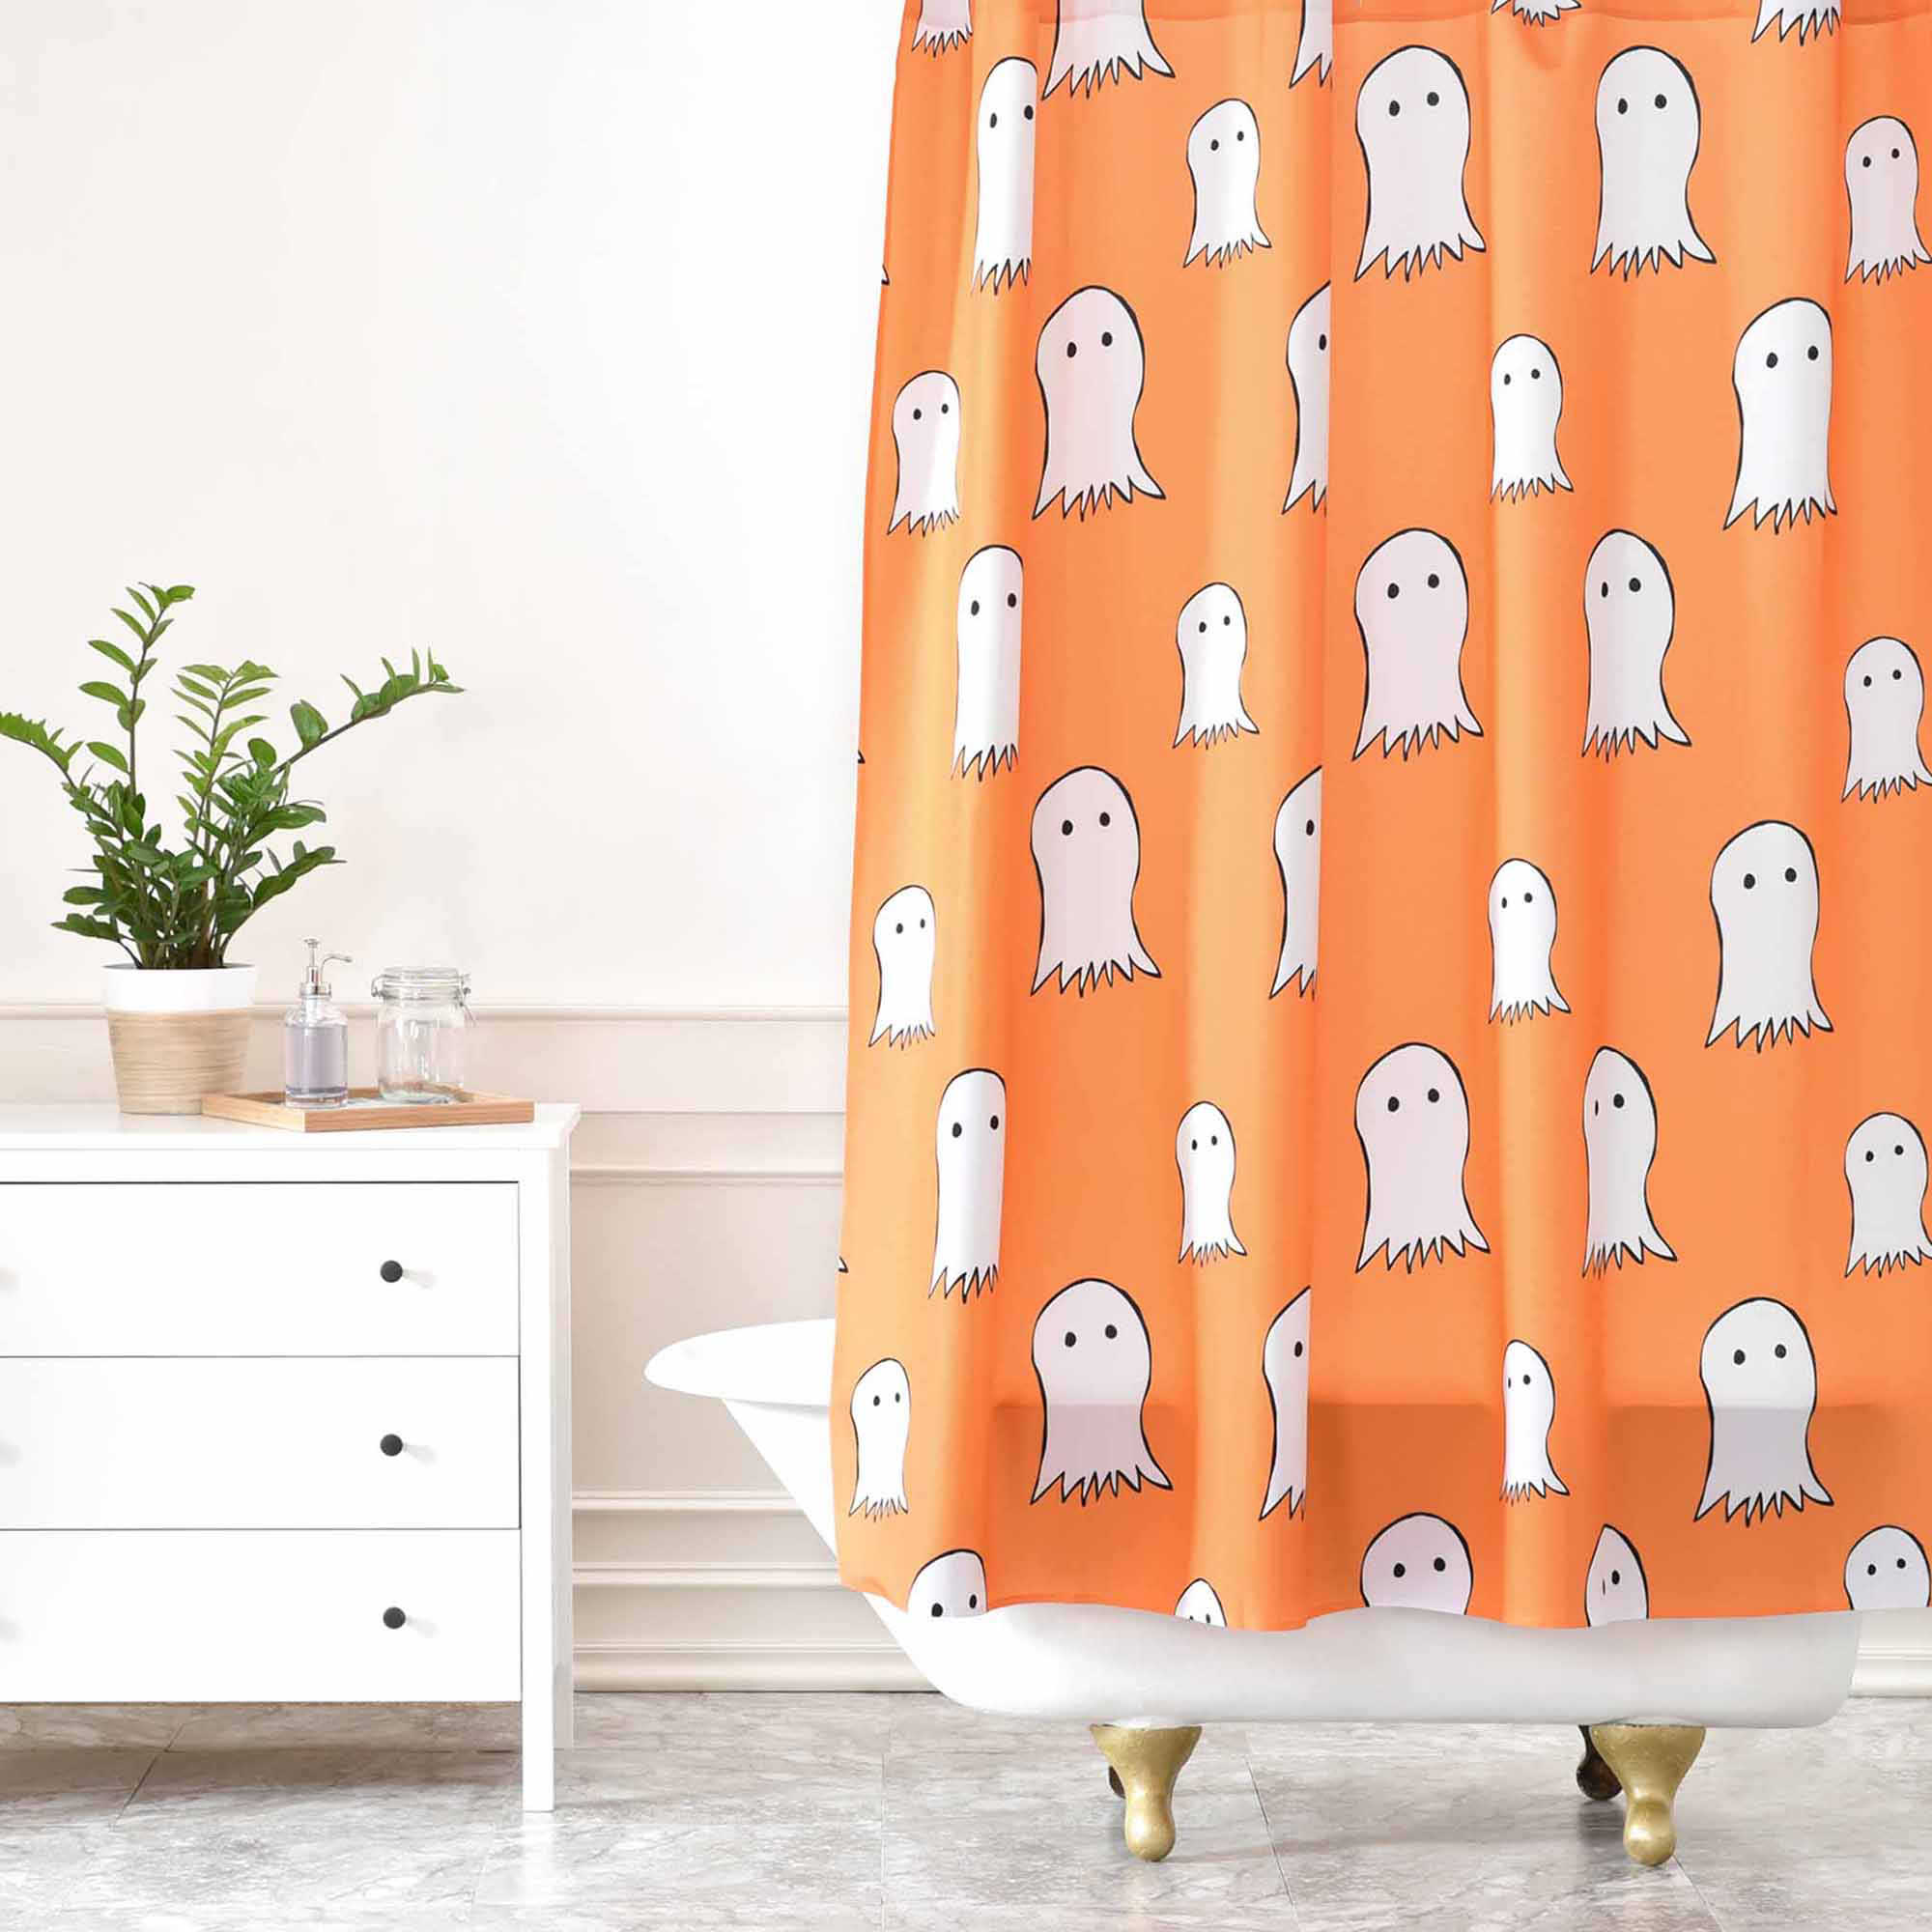 Ghosts Shower Curtain in Orange